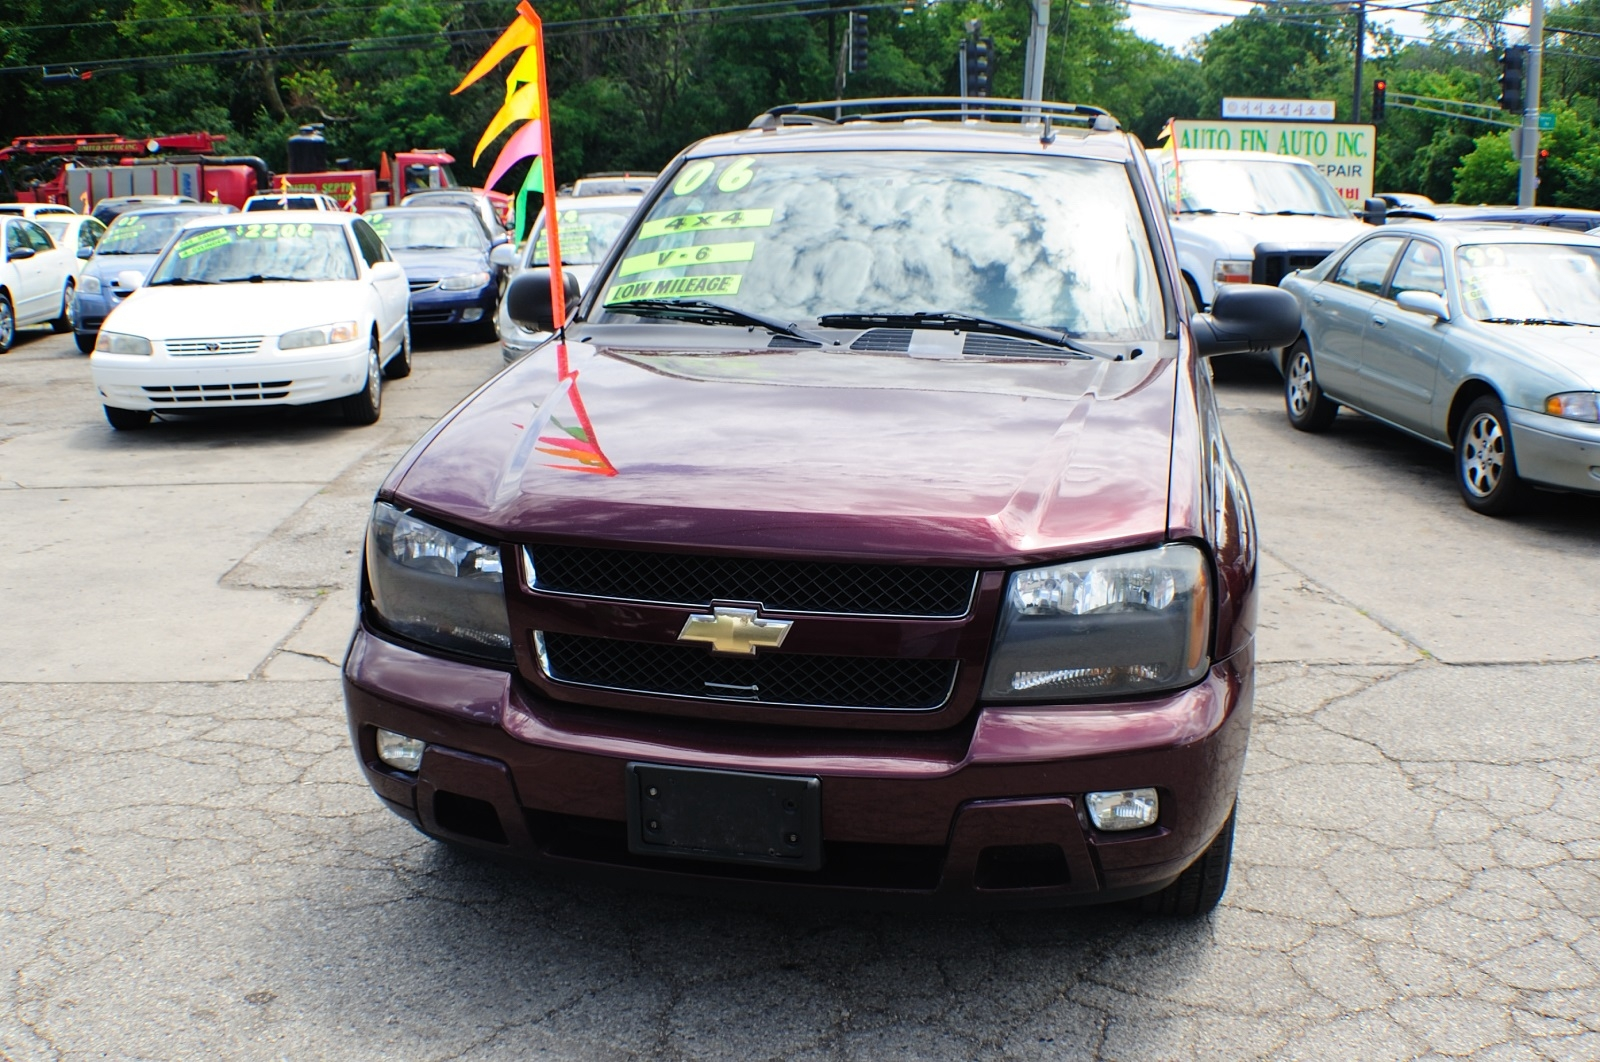 2006 Chevrolet Trailblazer LT Burgundy Used SUV Sale Buffalo Grove Bollingbrook Carol Stream Illinois